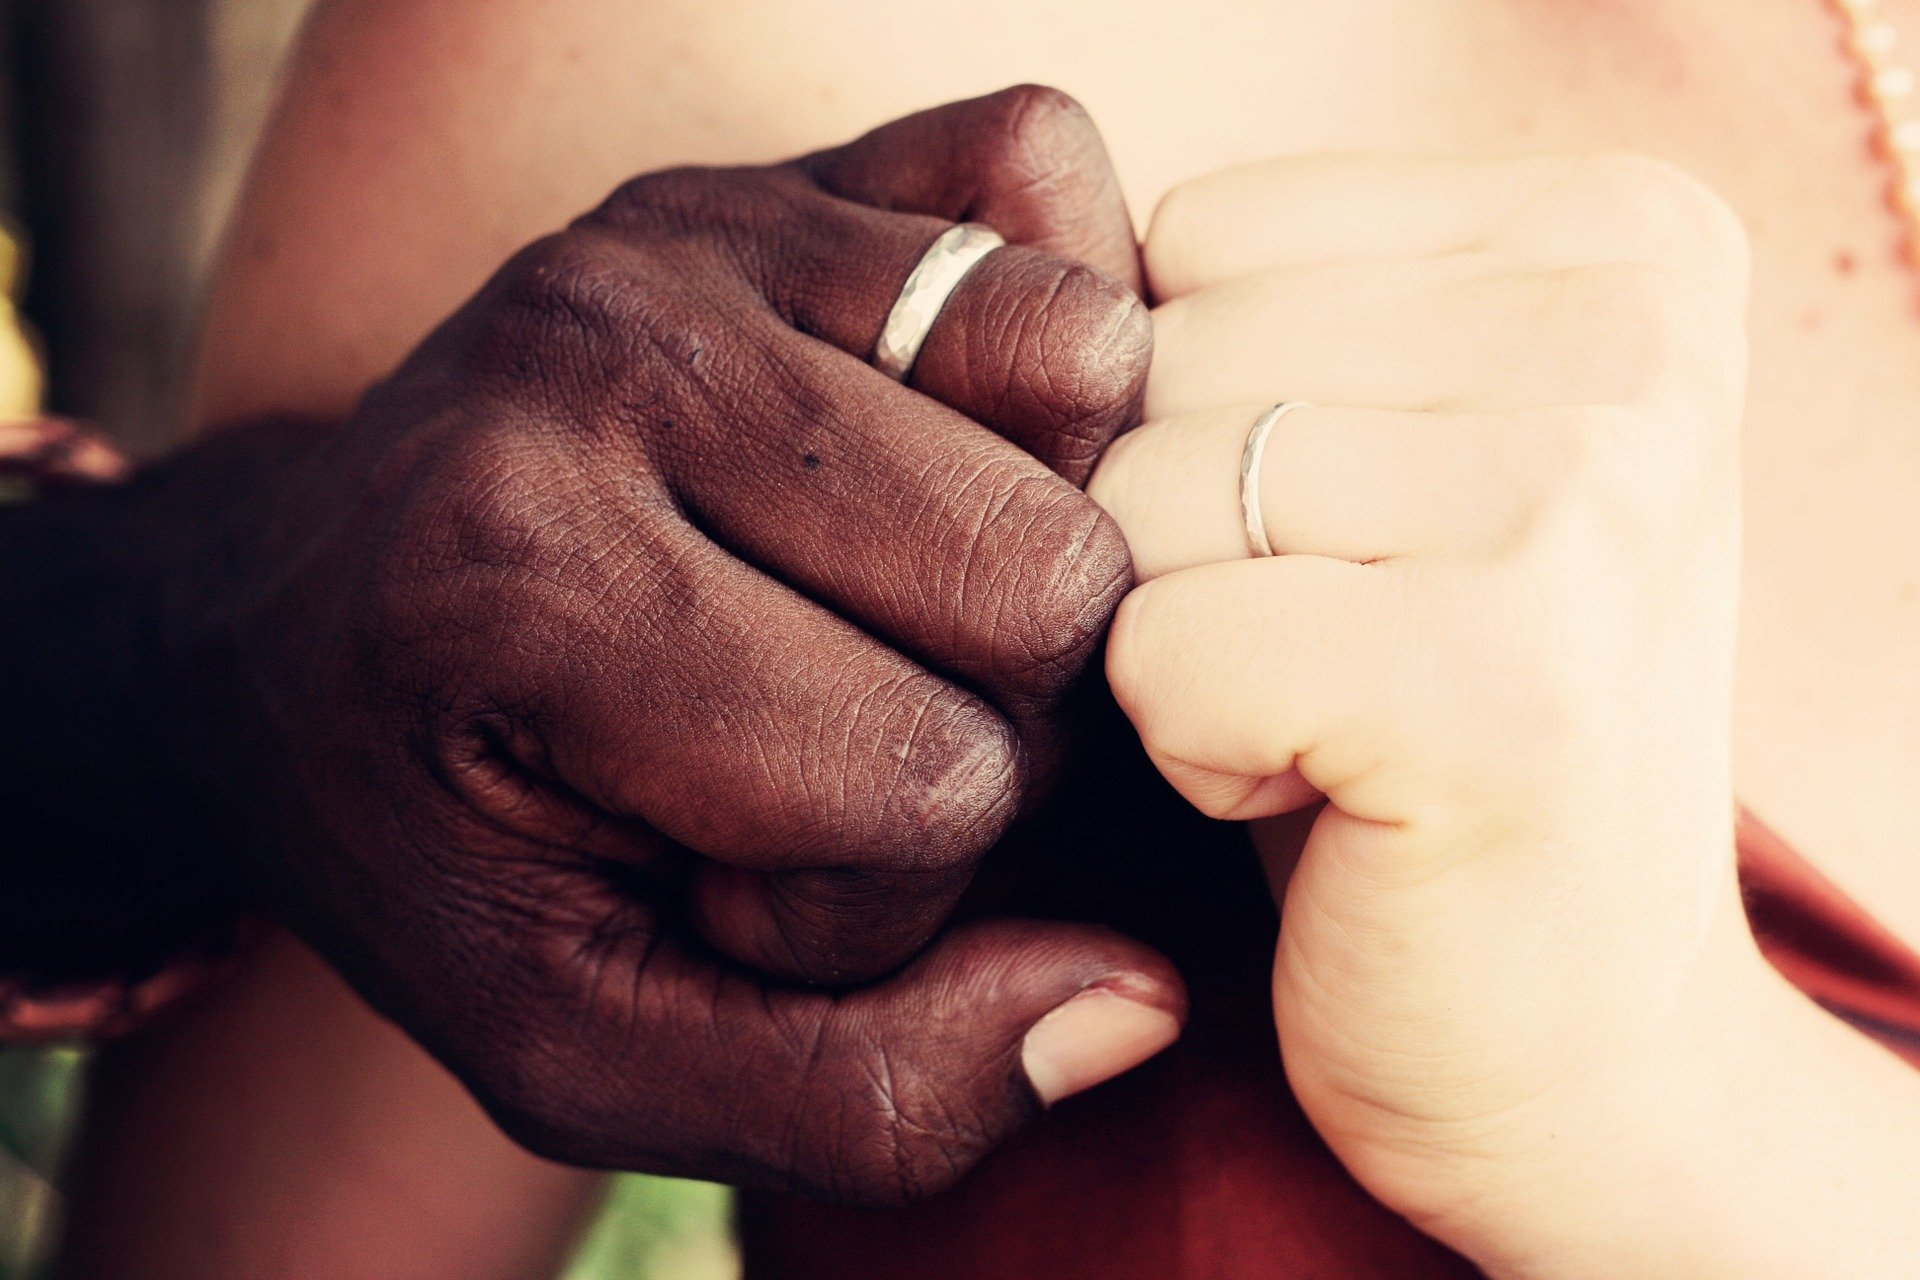 Interracial Couple Touching Hands